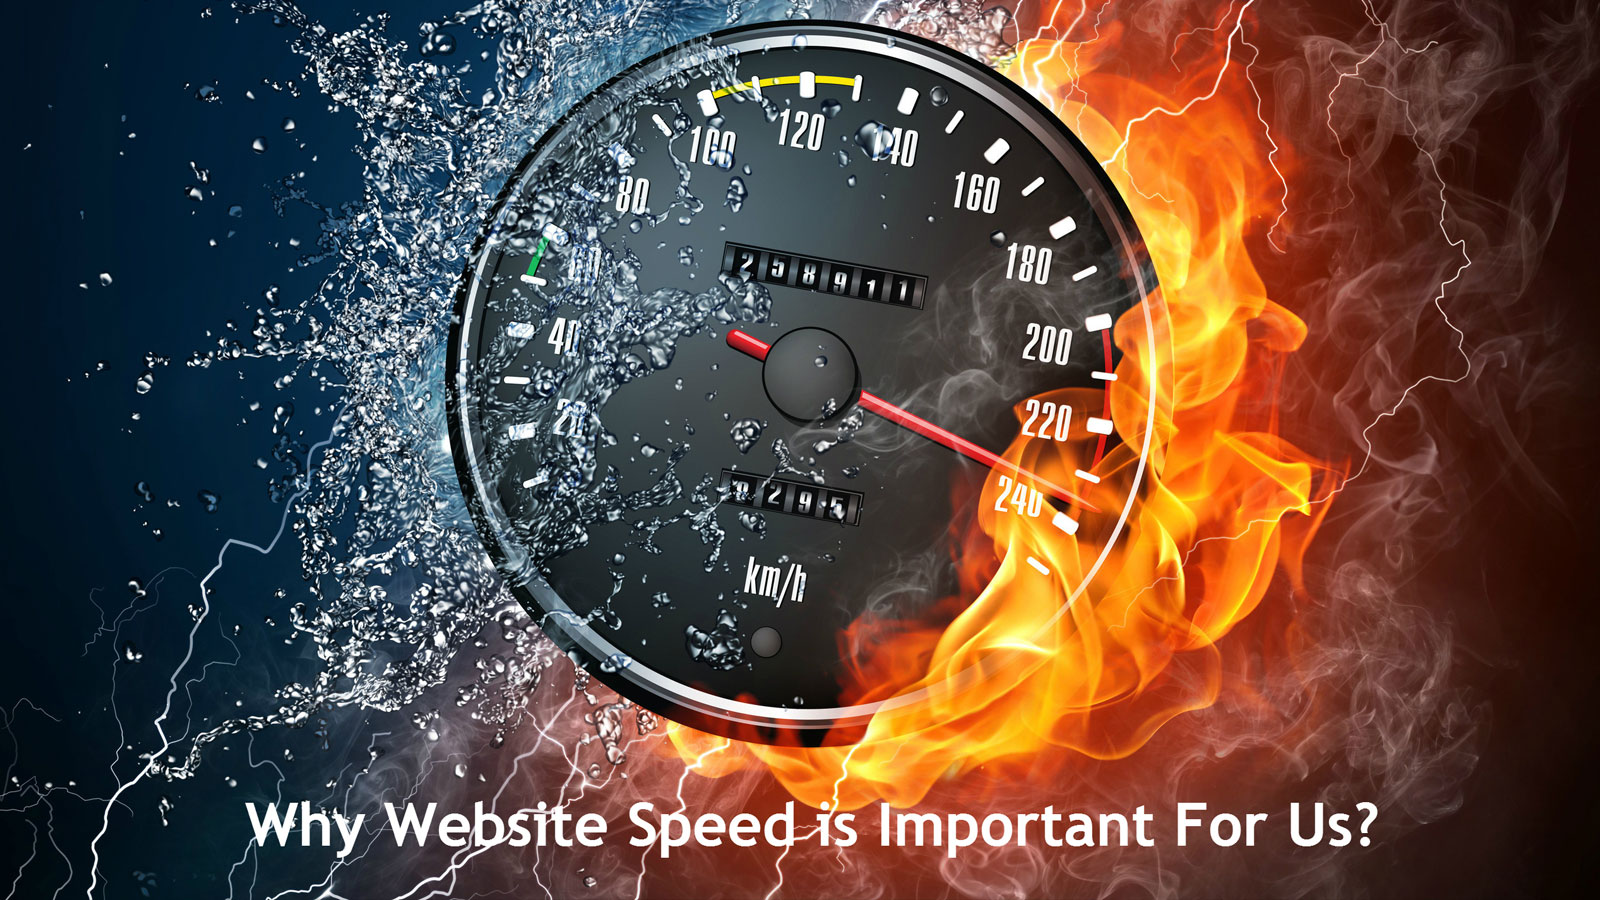 What is the importance of website speed?